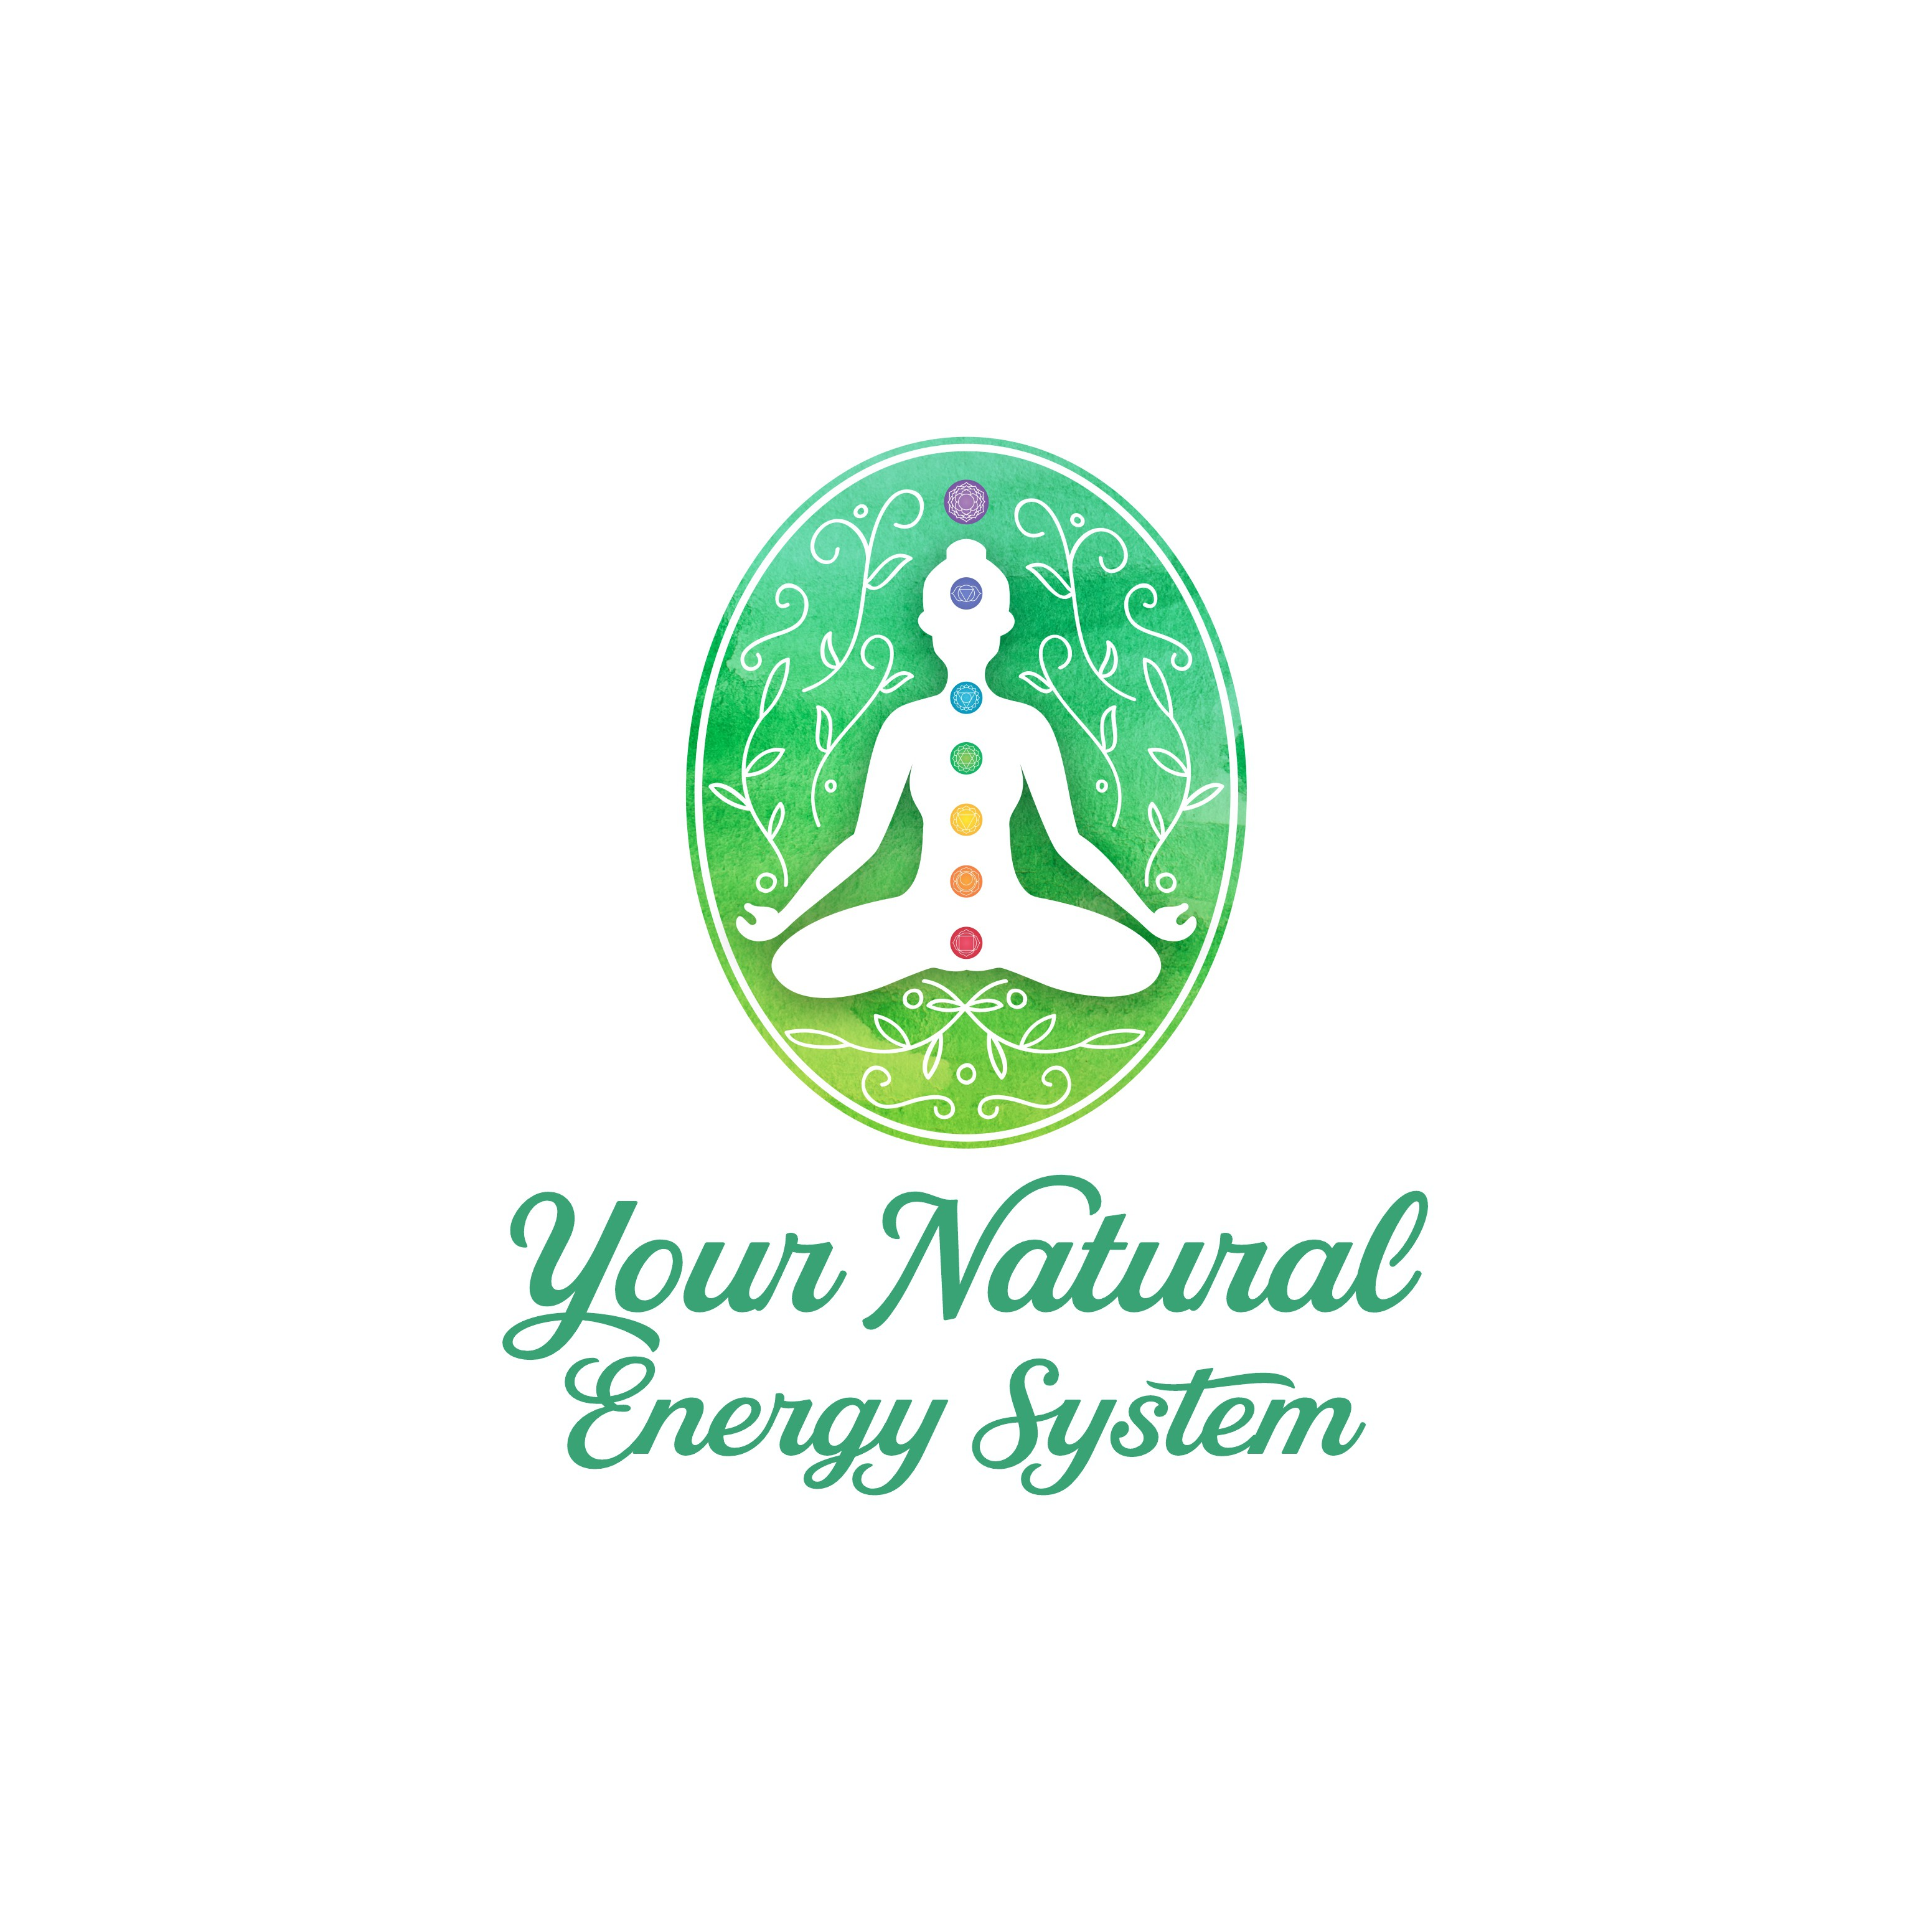 Your Natural Energy System